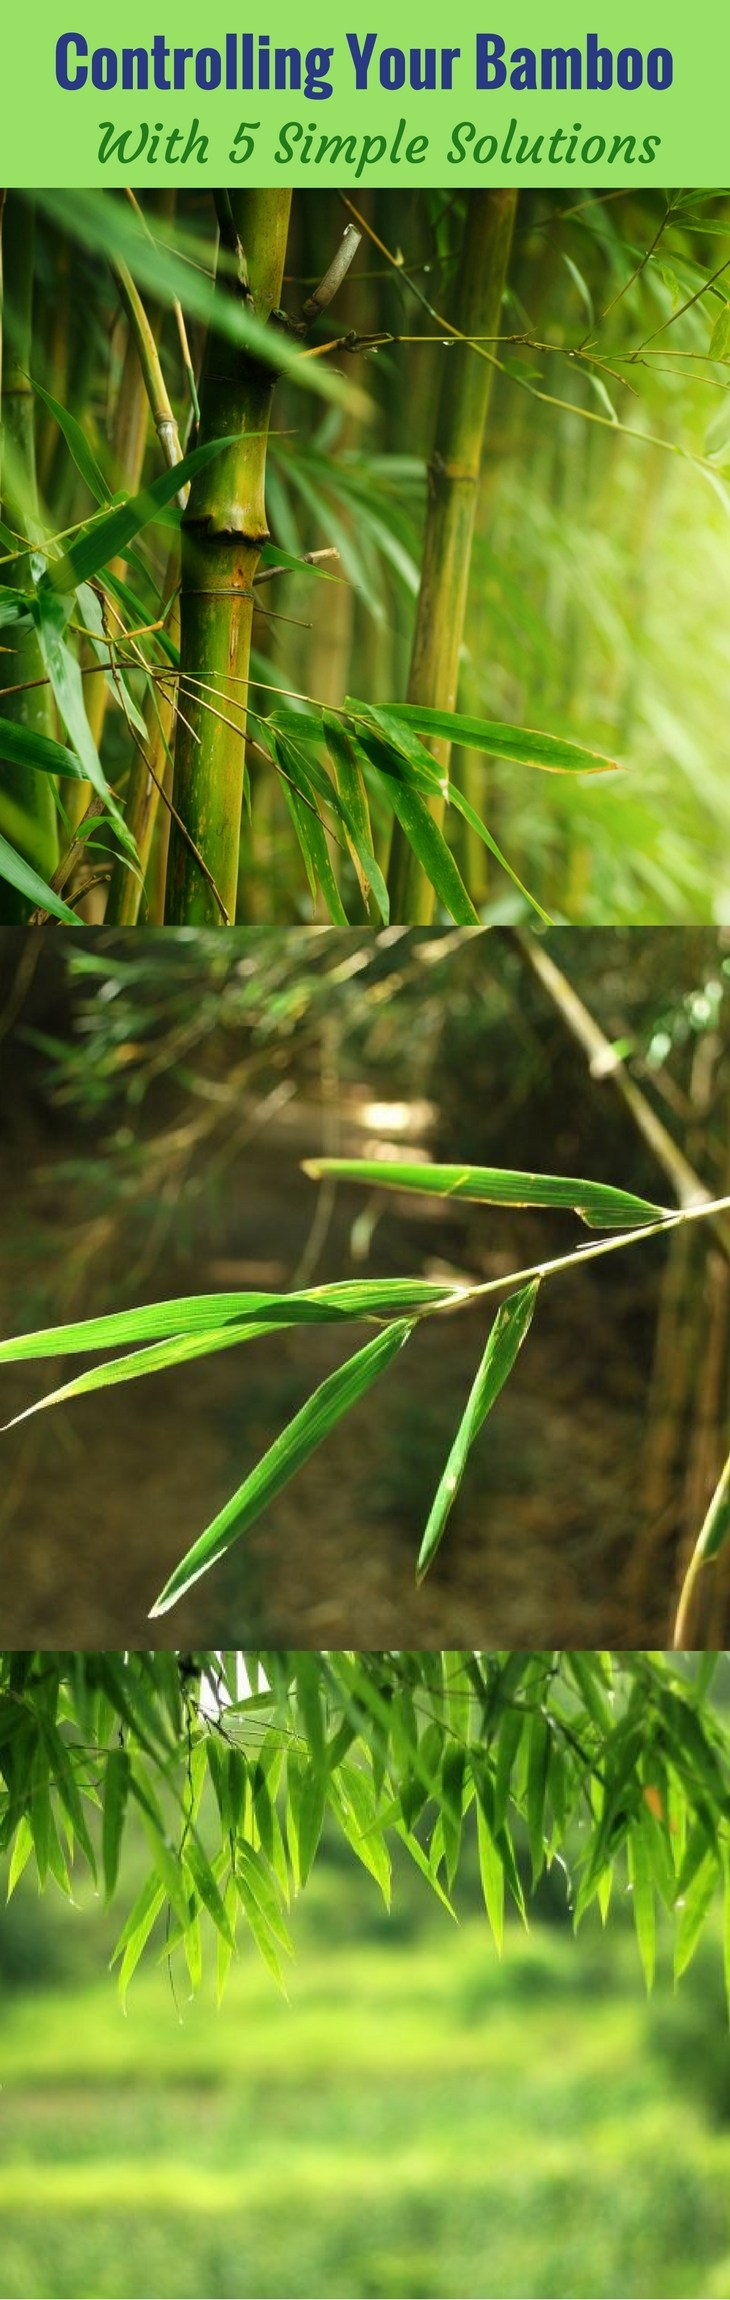 Controlling Your Bamboo - With 5 Simple Solutions